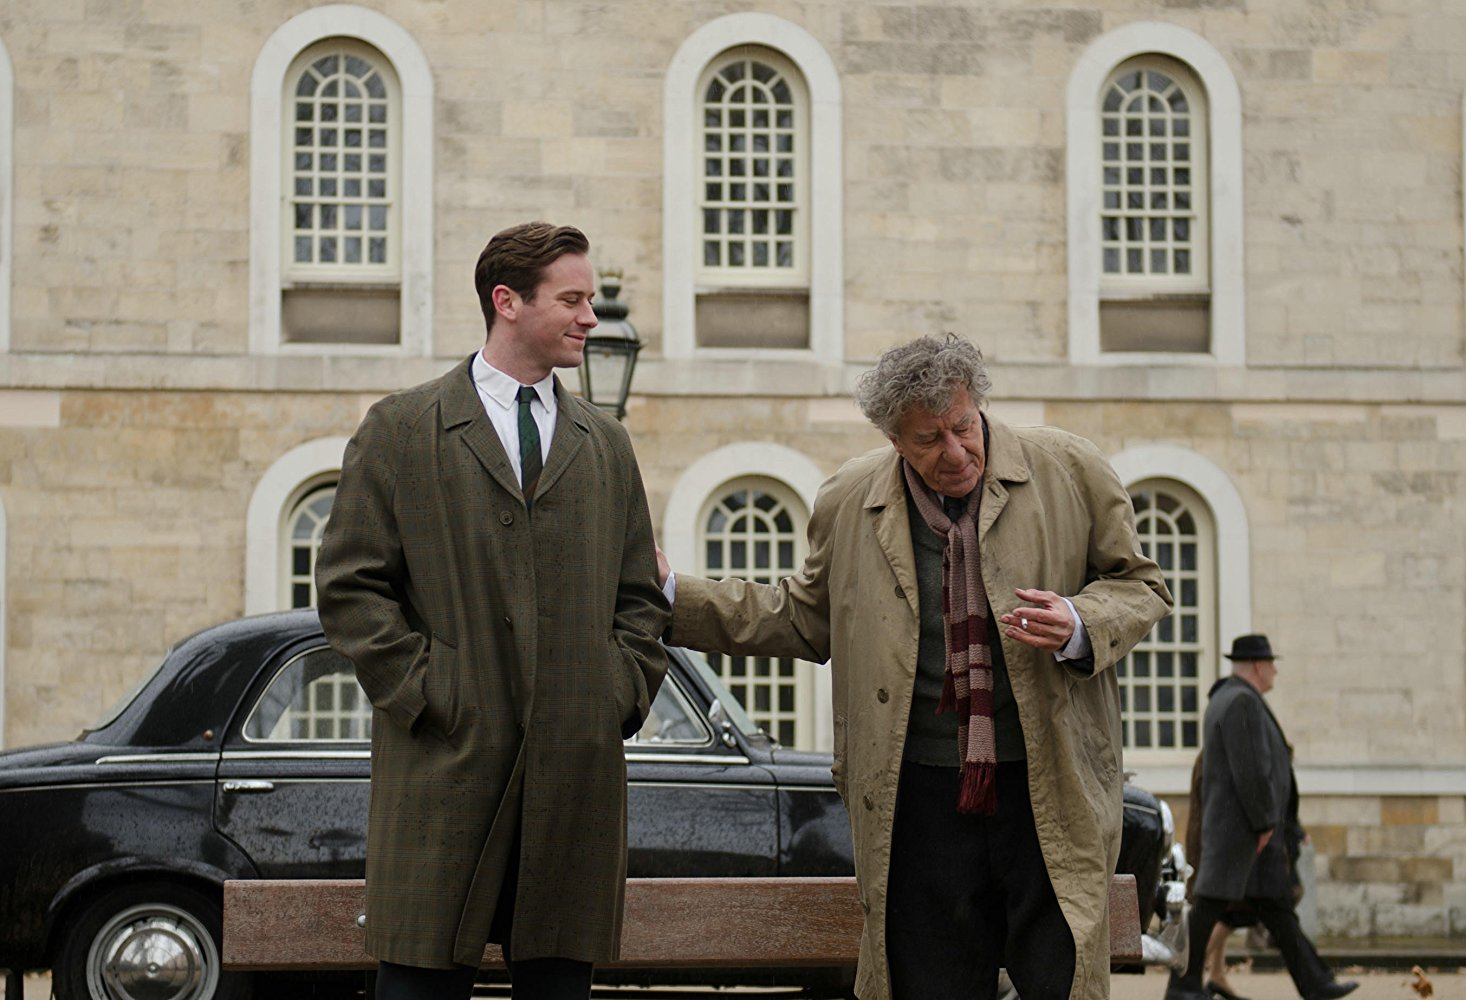 Armie Hammer and Geoffrey Rush star as James Lord and Alberto Giacometti in